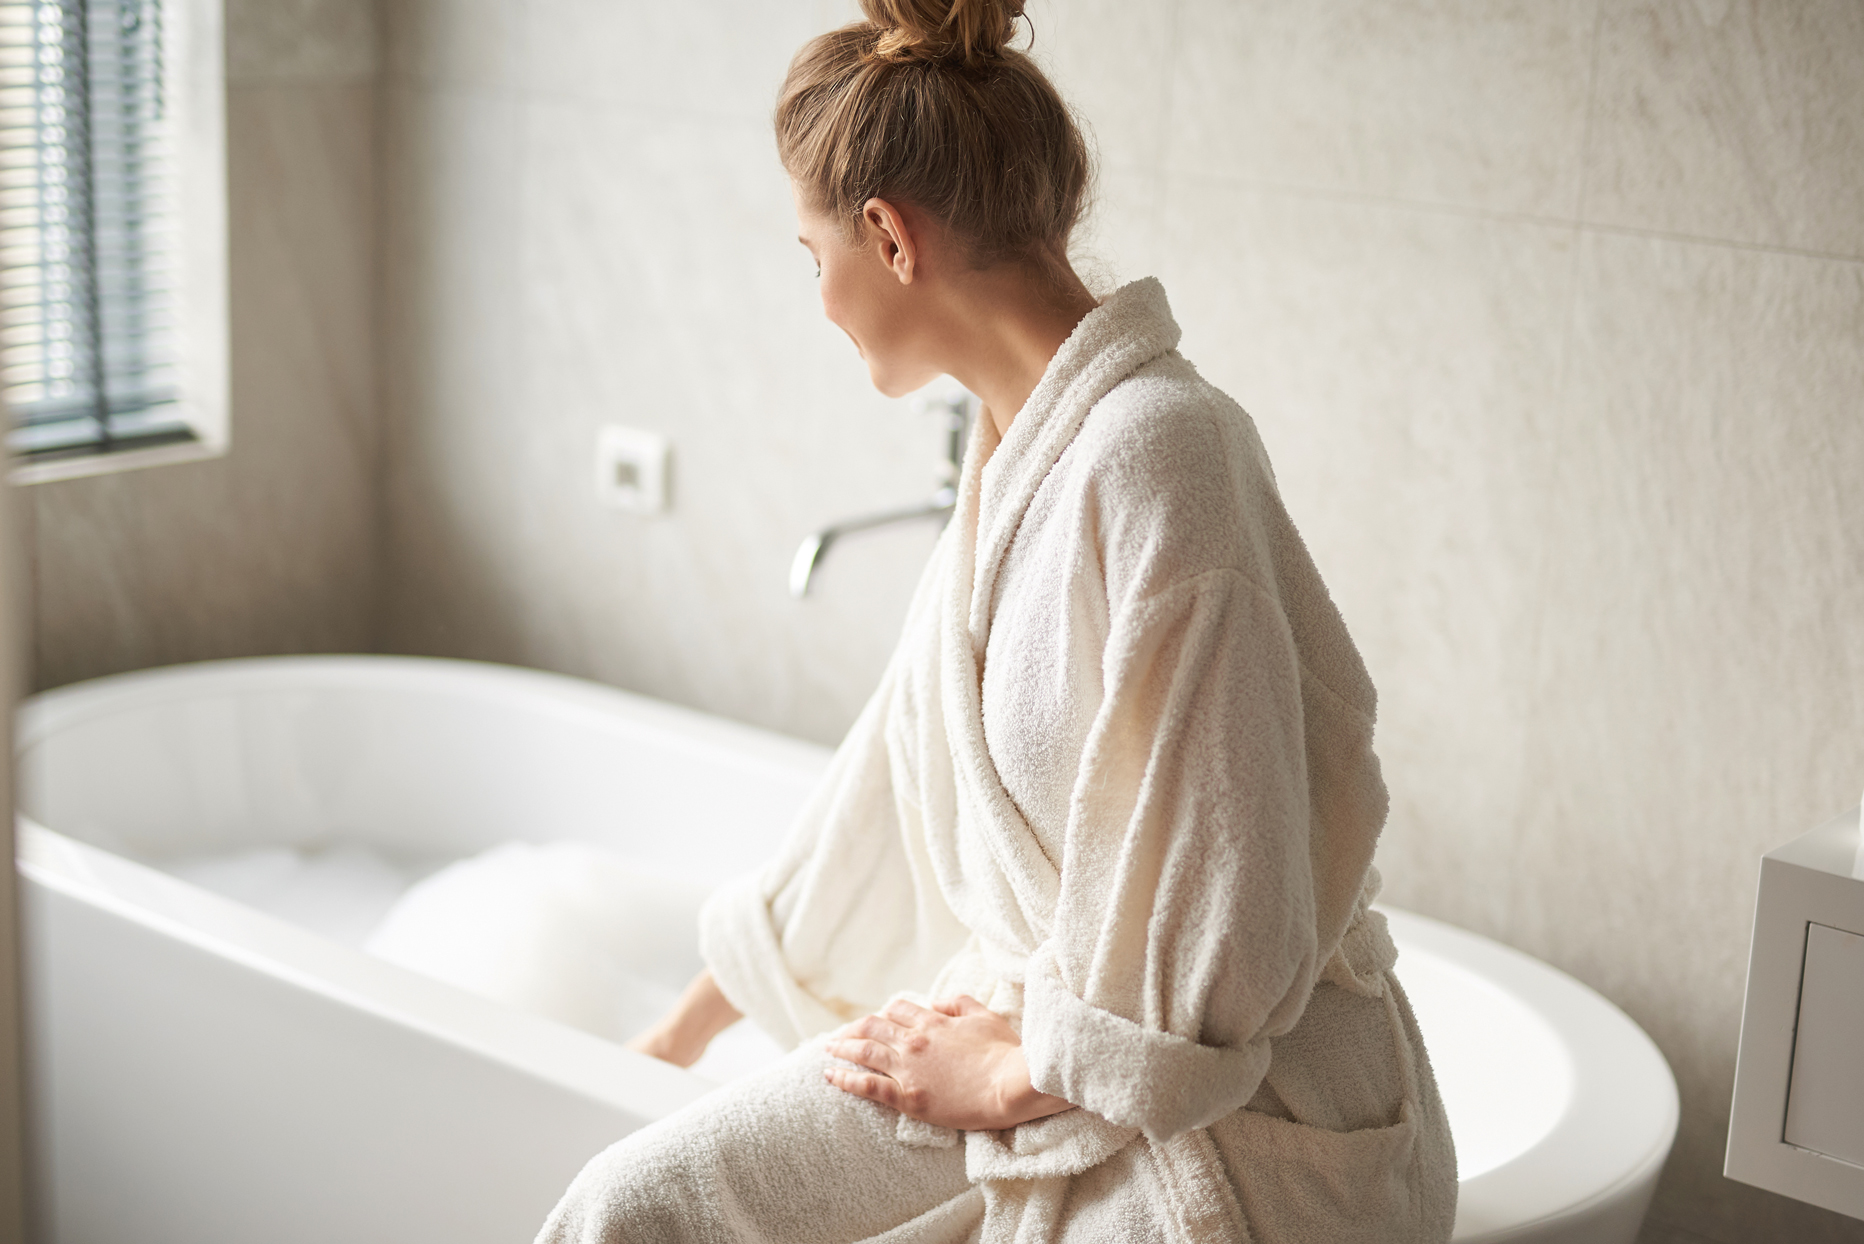 person wearing white bathrobe sitting on edge of tub filled with bubbles